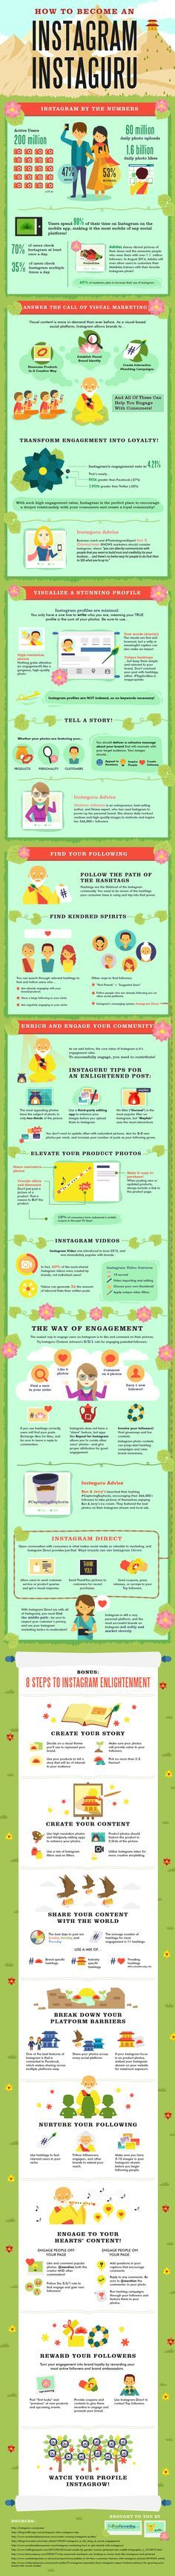 Social Media Marketing On Instagram: Become An Instaguru — #infographic Social Media Marketing On Instagram: Become An Instaguru — #infographic